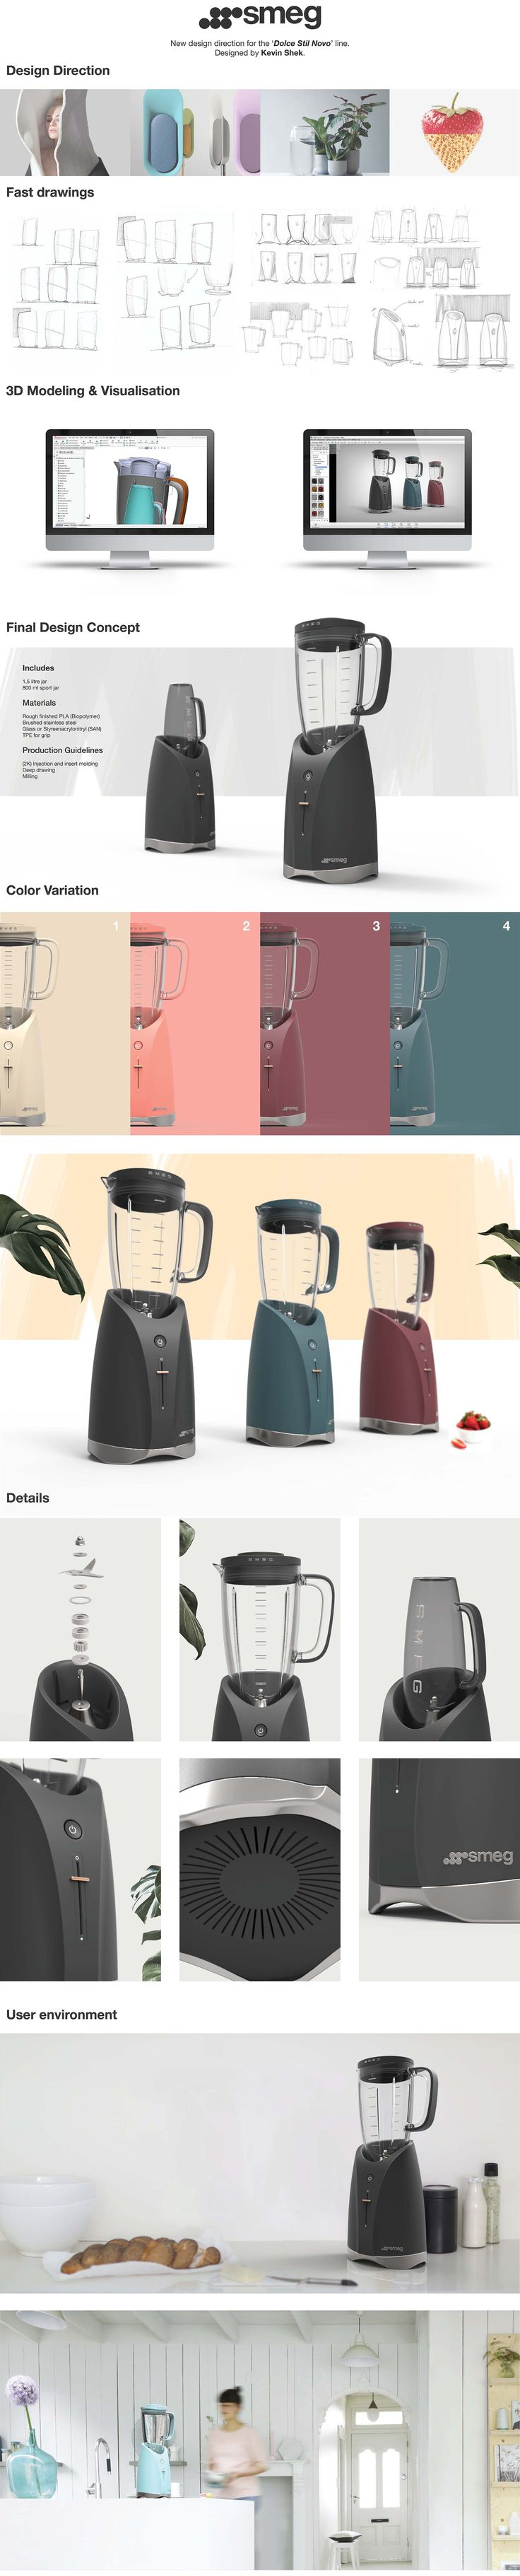 SMEG Blender concept design by Kevin Shek. A new design direction for the 'Dolce Stil Novo' product line.